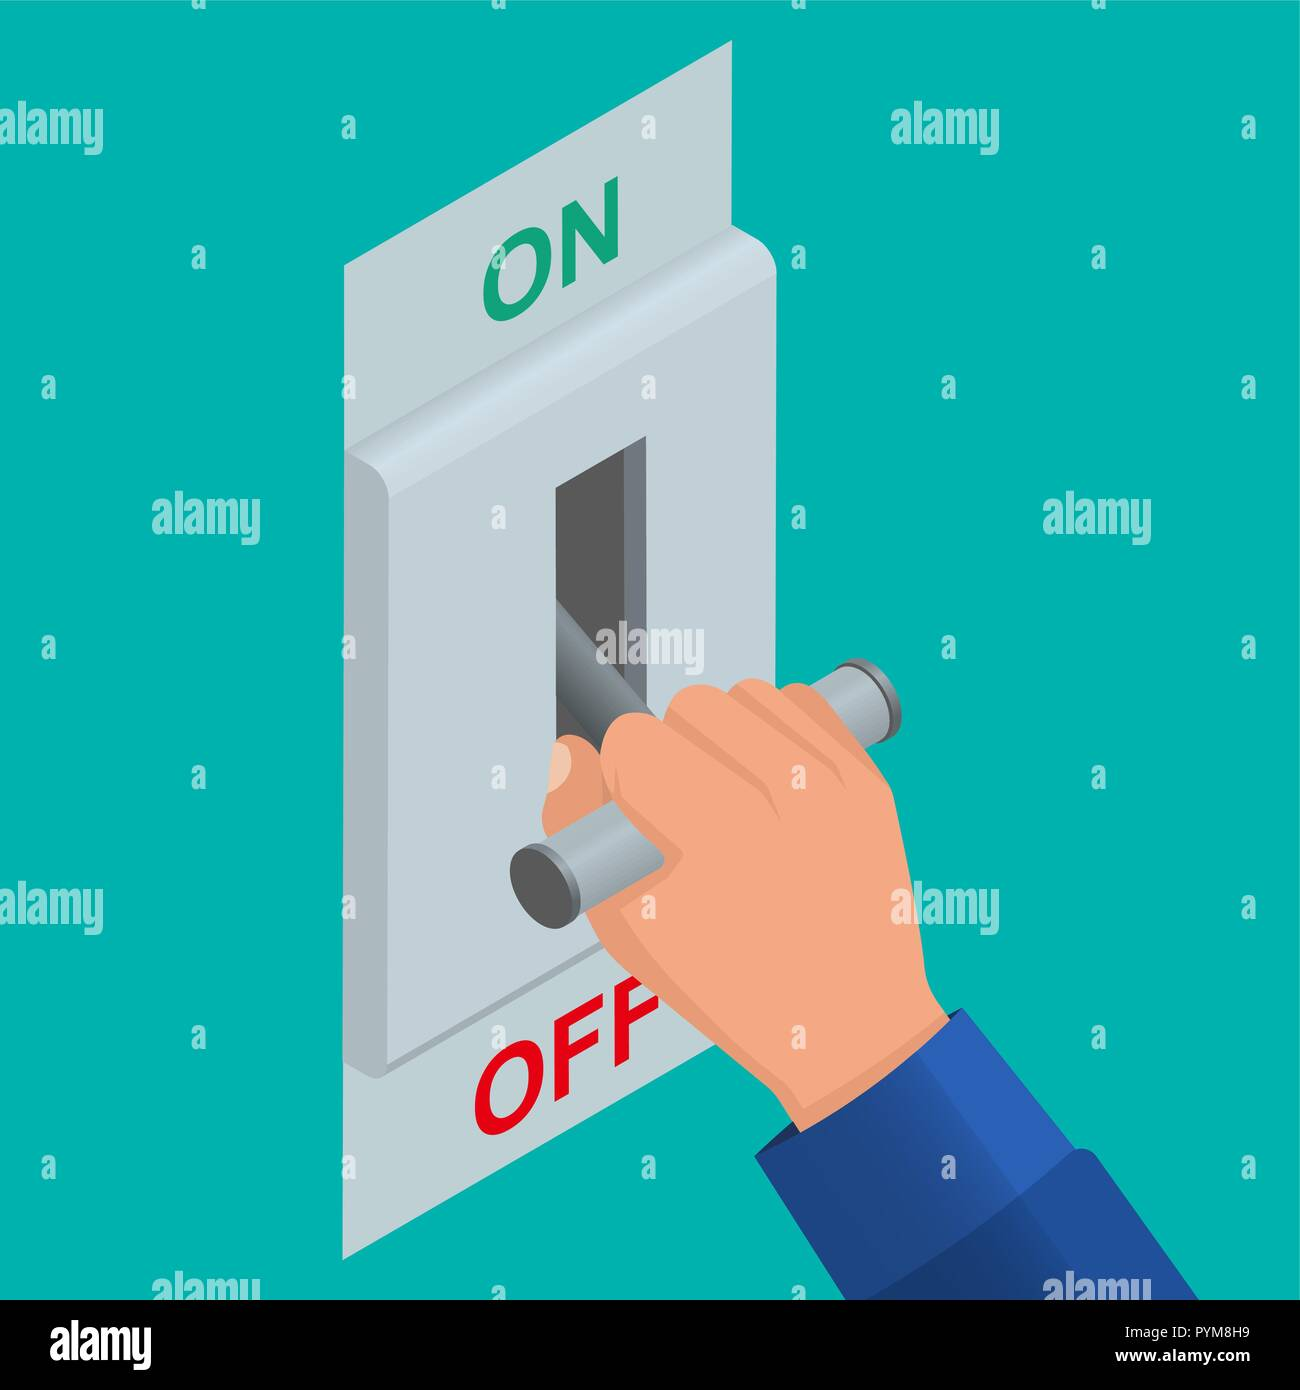 Isometric icon of electric knife switch in the off position. Toggle switch. High voltage. Electrical circuit is enabled. Power station. Danger. Vector - Stock Vector